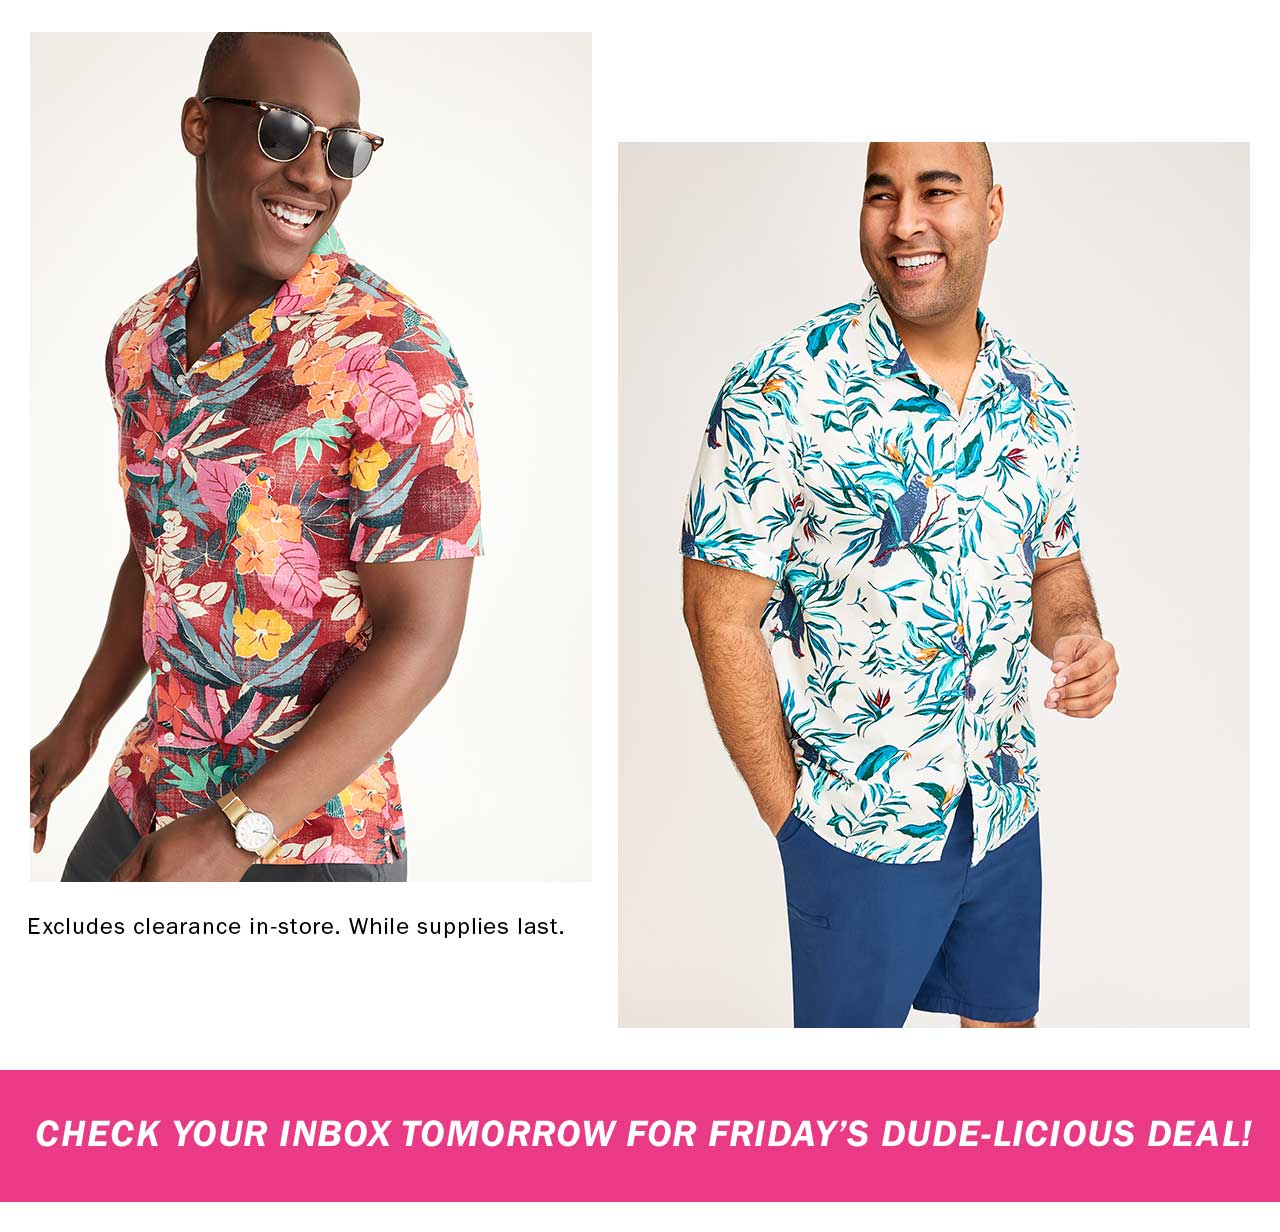 CHECK YOUR INBOX TOMORROW FOR FRIDAY'S DUDE-LICIOUS DEAL!